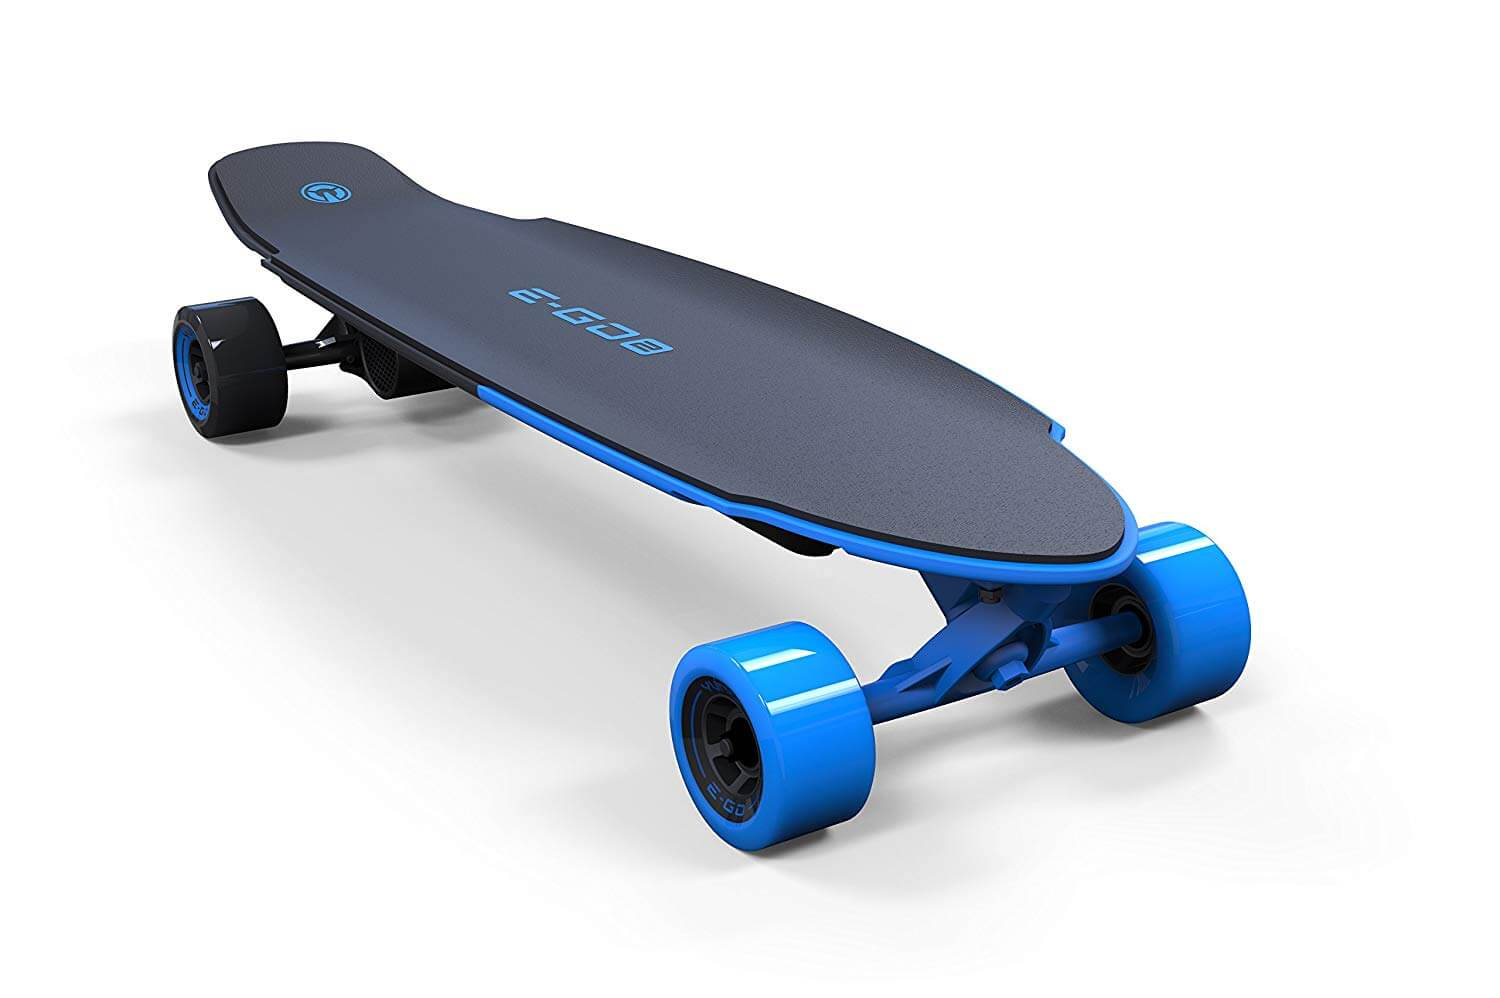 Yuneec E-Go 2 Electric Skateboard Review